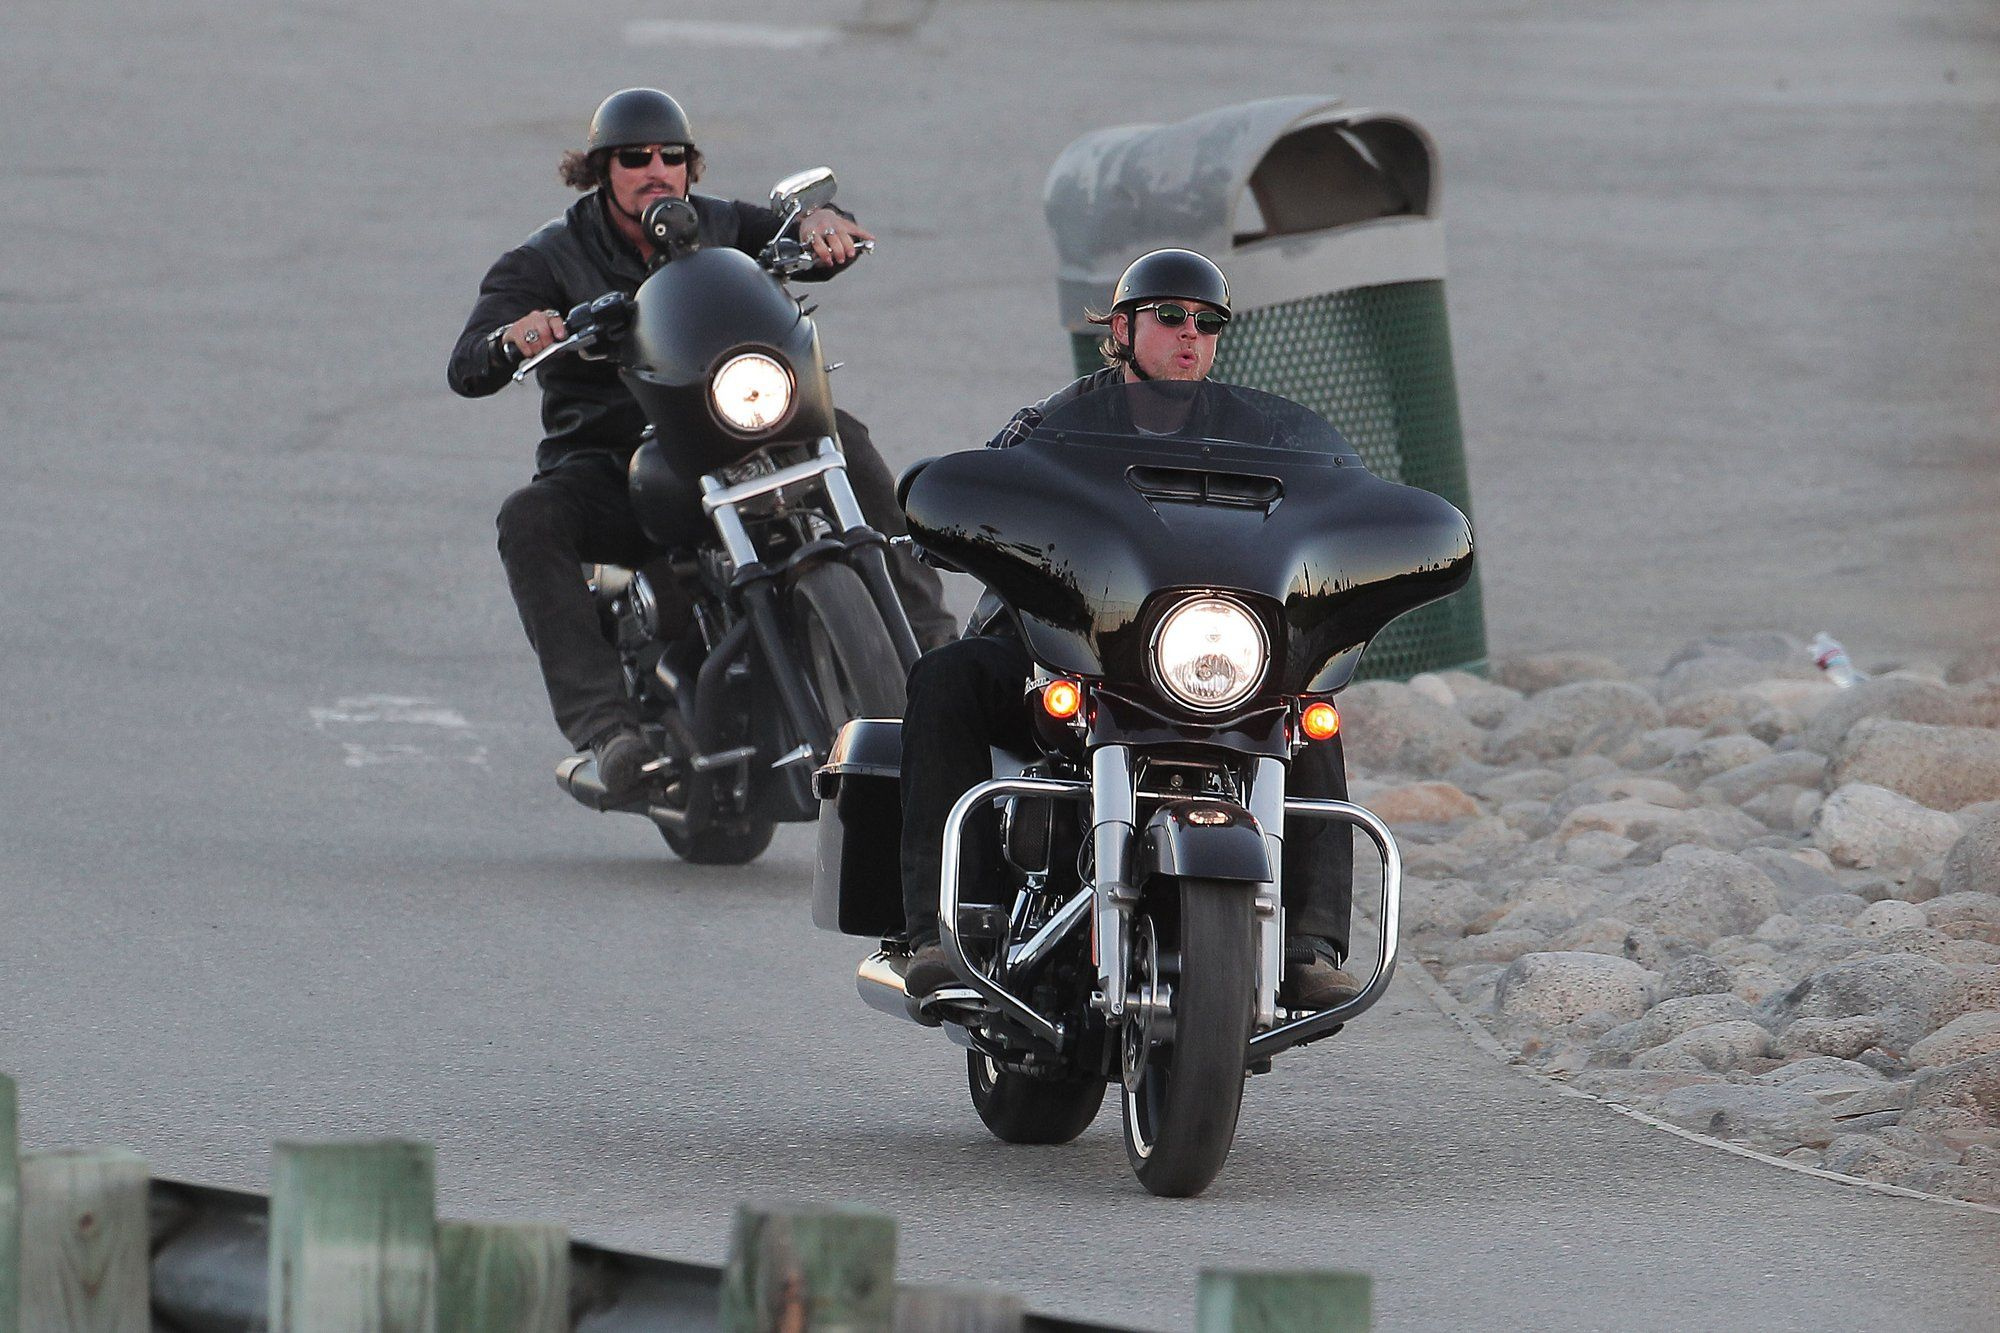 10 23 14 Filming Sons Of Anarchy In San Pedro California Sons Of Anarchy Charlie Hunnam Charlie Hunnam Soa